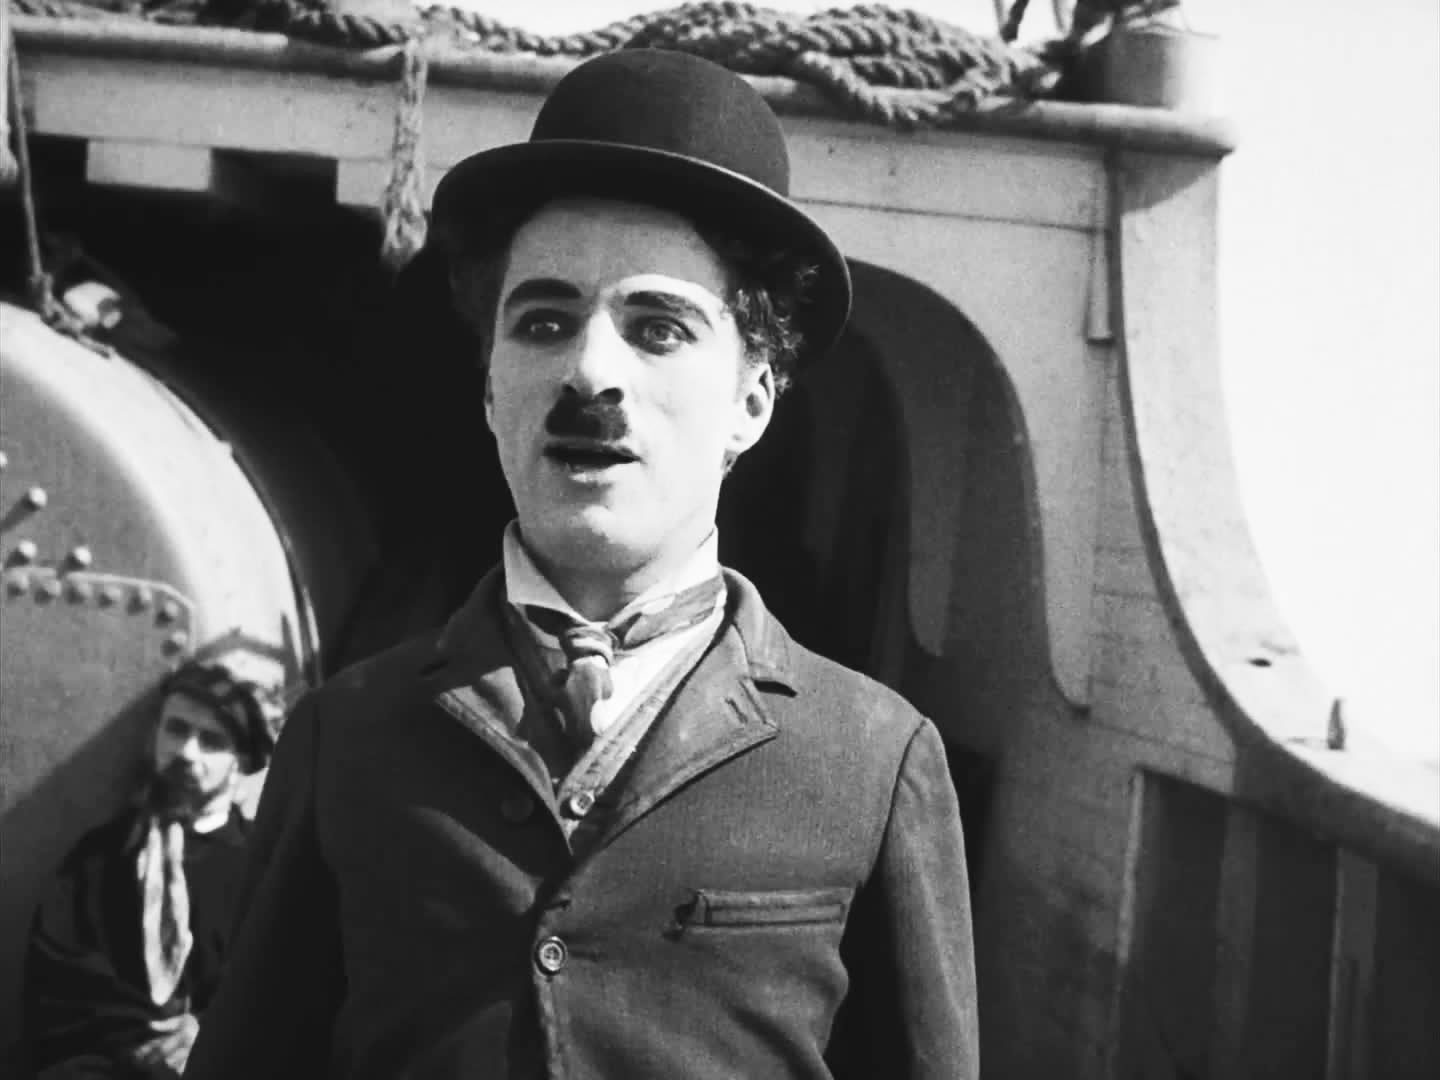 7 Art Cinema | Official Website | Charlie Chaplin - 1917 - The Immigrant | 12 | Film Photograph